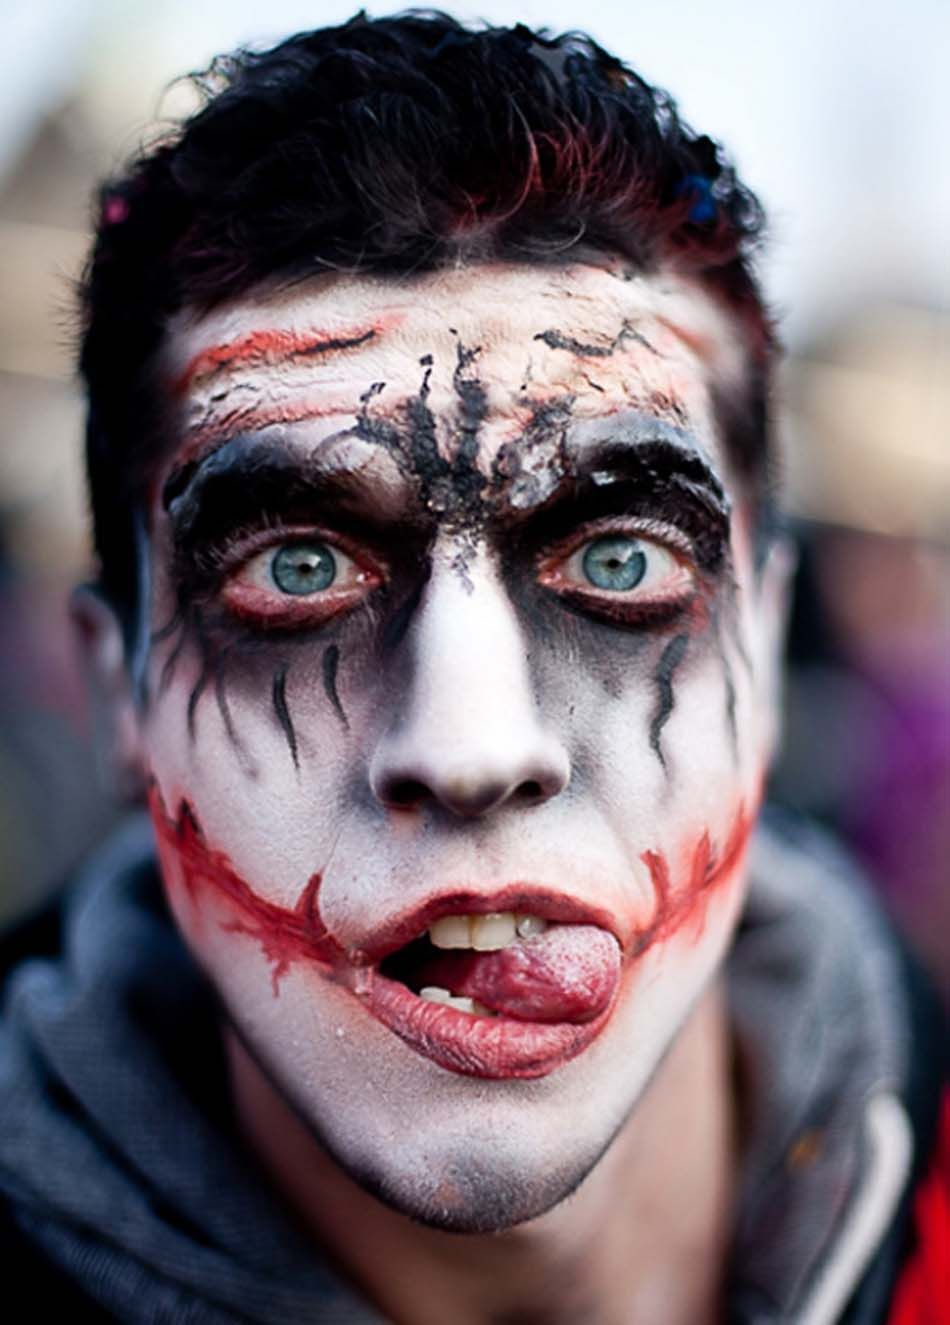 Maquillage Homme Halloween 16 Id Es Pour R Ussir Une Transformation Terrifiante Maquillage